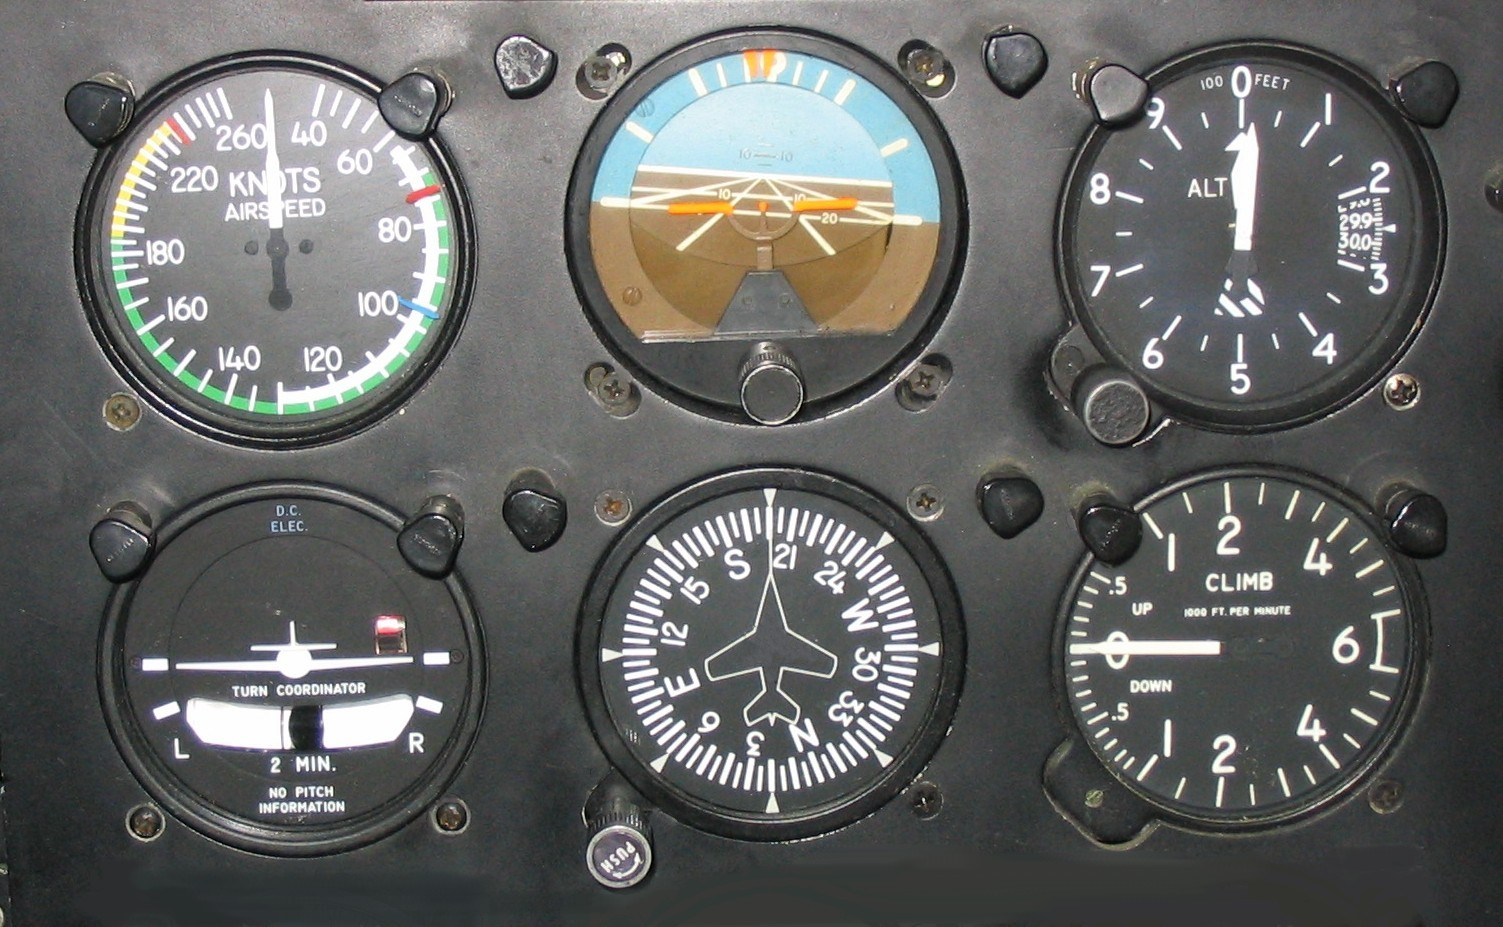 Airplane Instrument Panel : Aircraft cockpit instruments explained flying technique